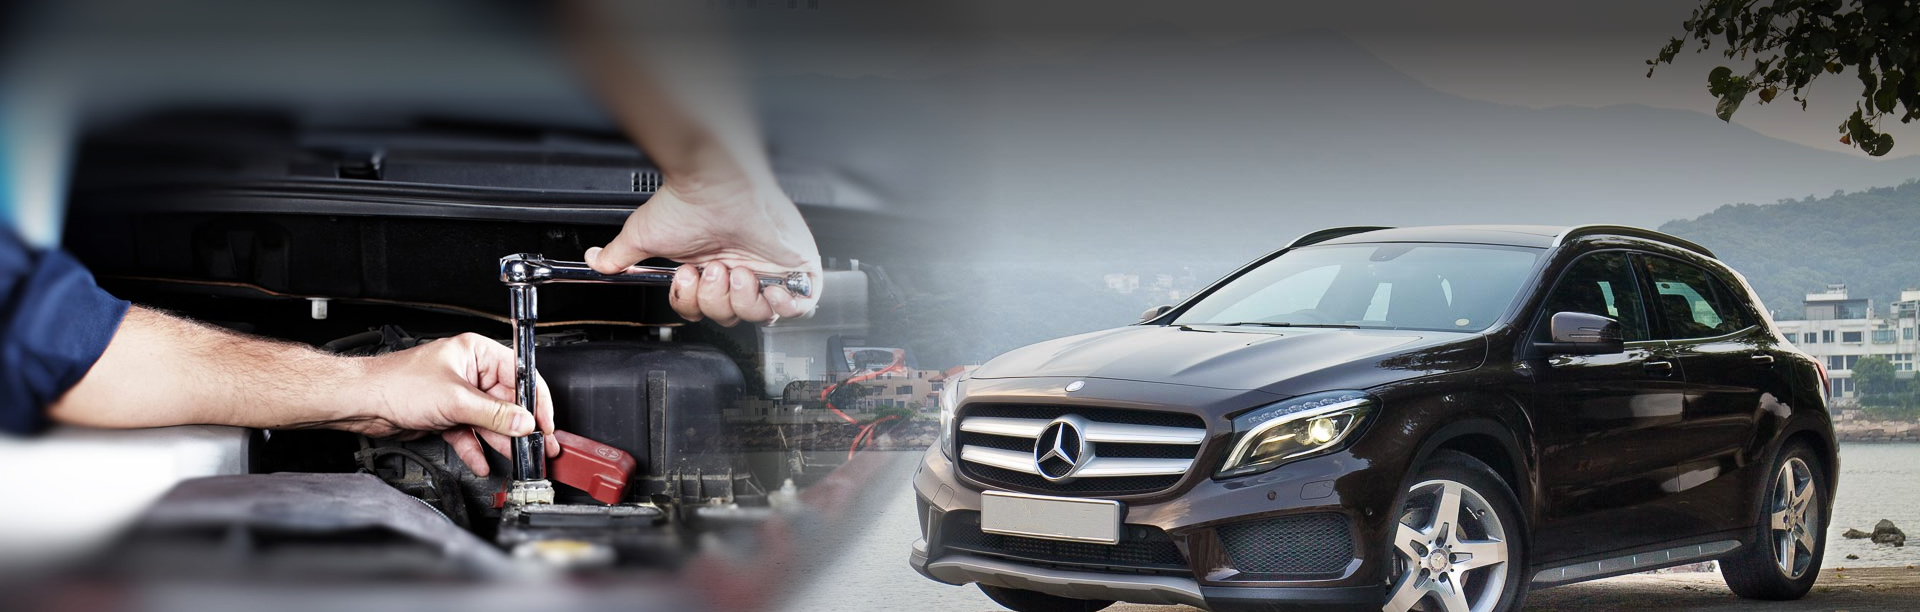 Sydney business networking business directory sydney for Schedule c service mercedes benz